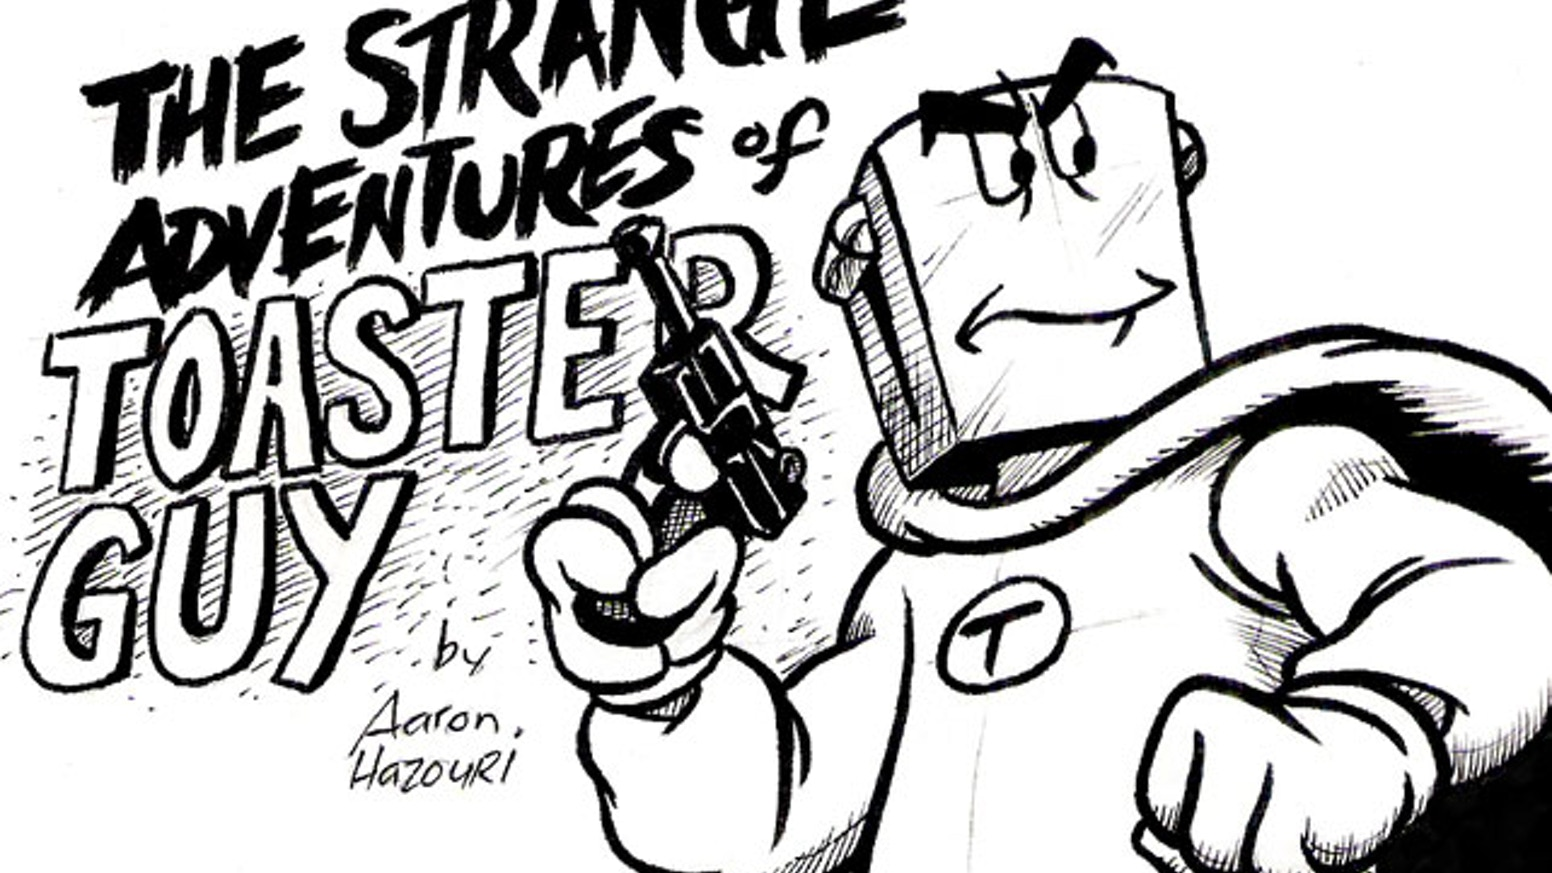 Autobiographical Would Be Toaster Headed Crimefighter Comic By Aaron